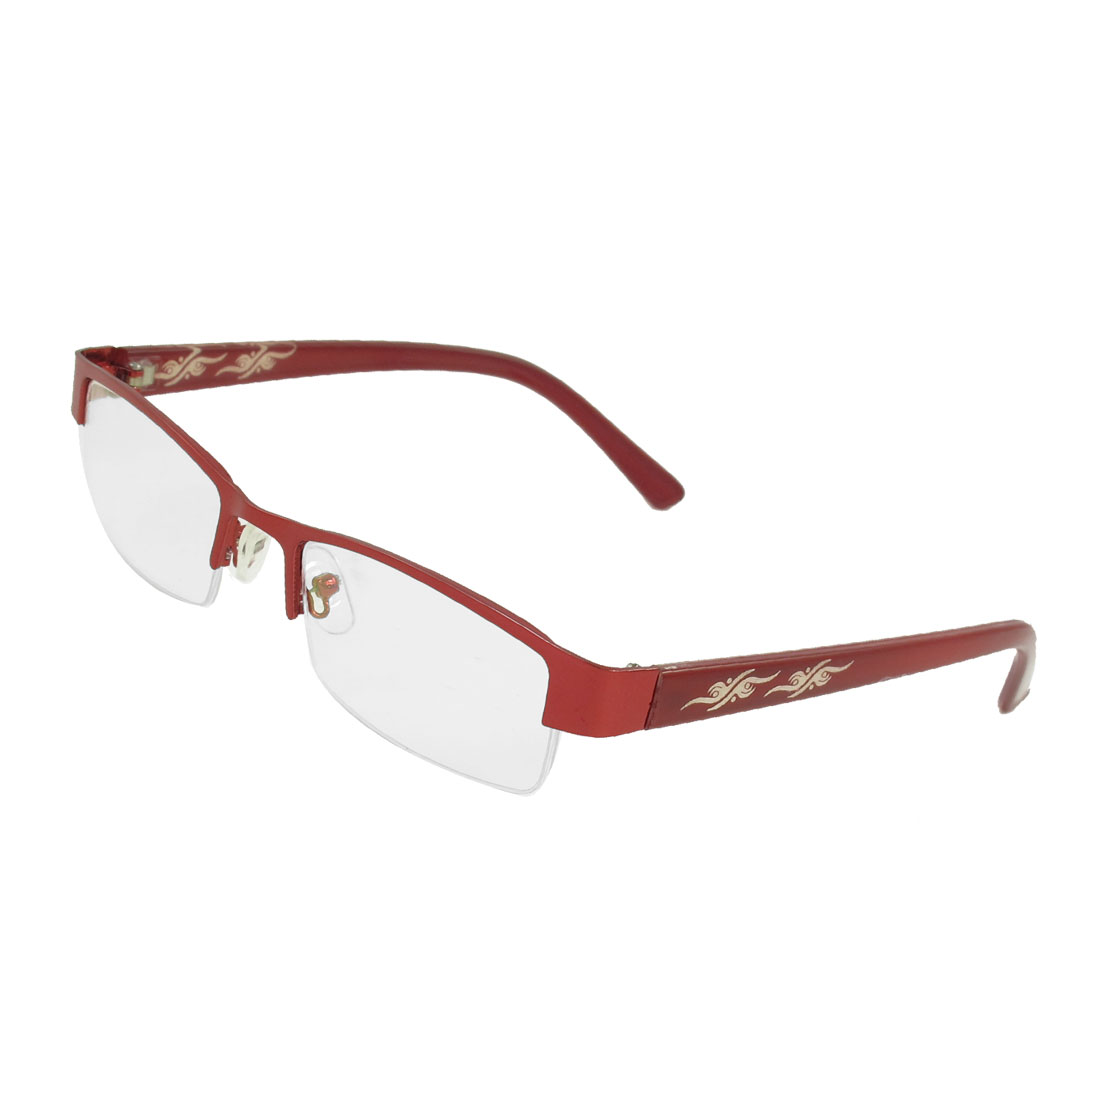 Lady Burgundy Plastic Half Rim Single Bridge Plain Glasses